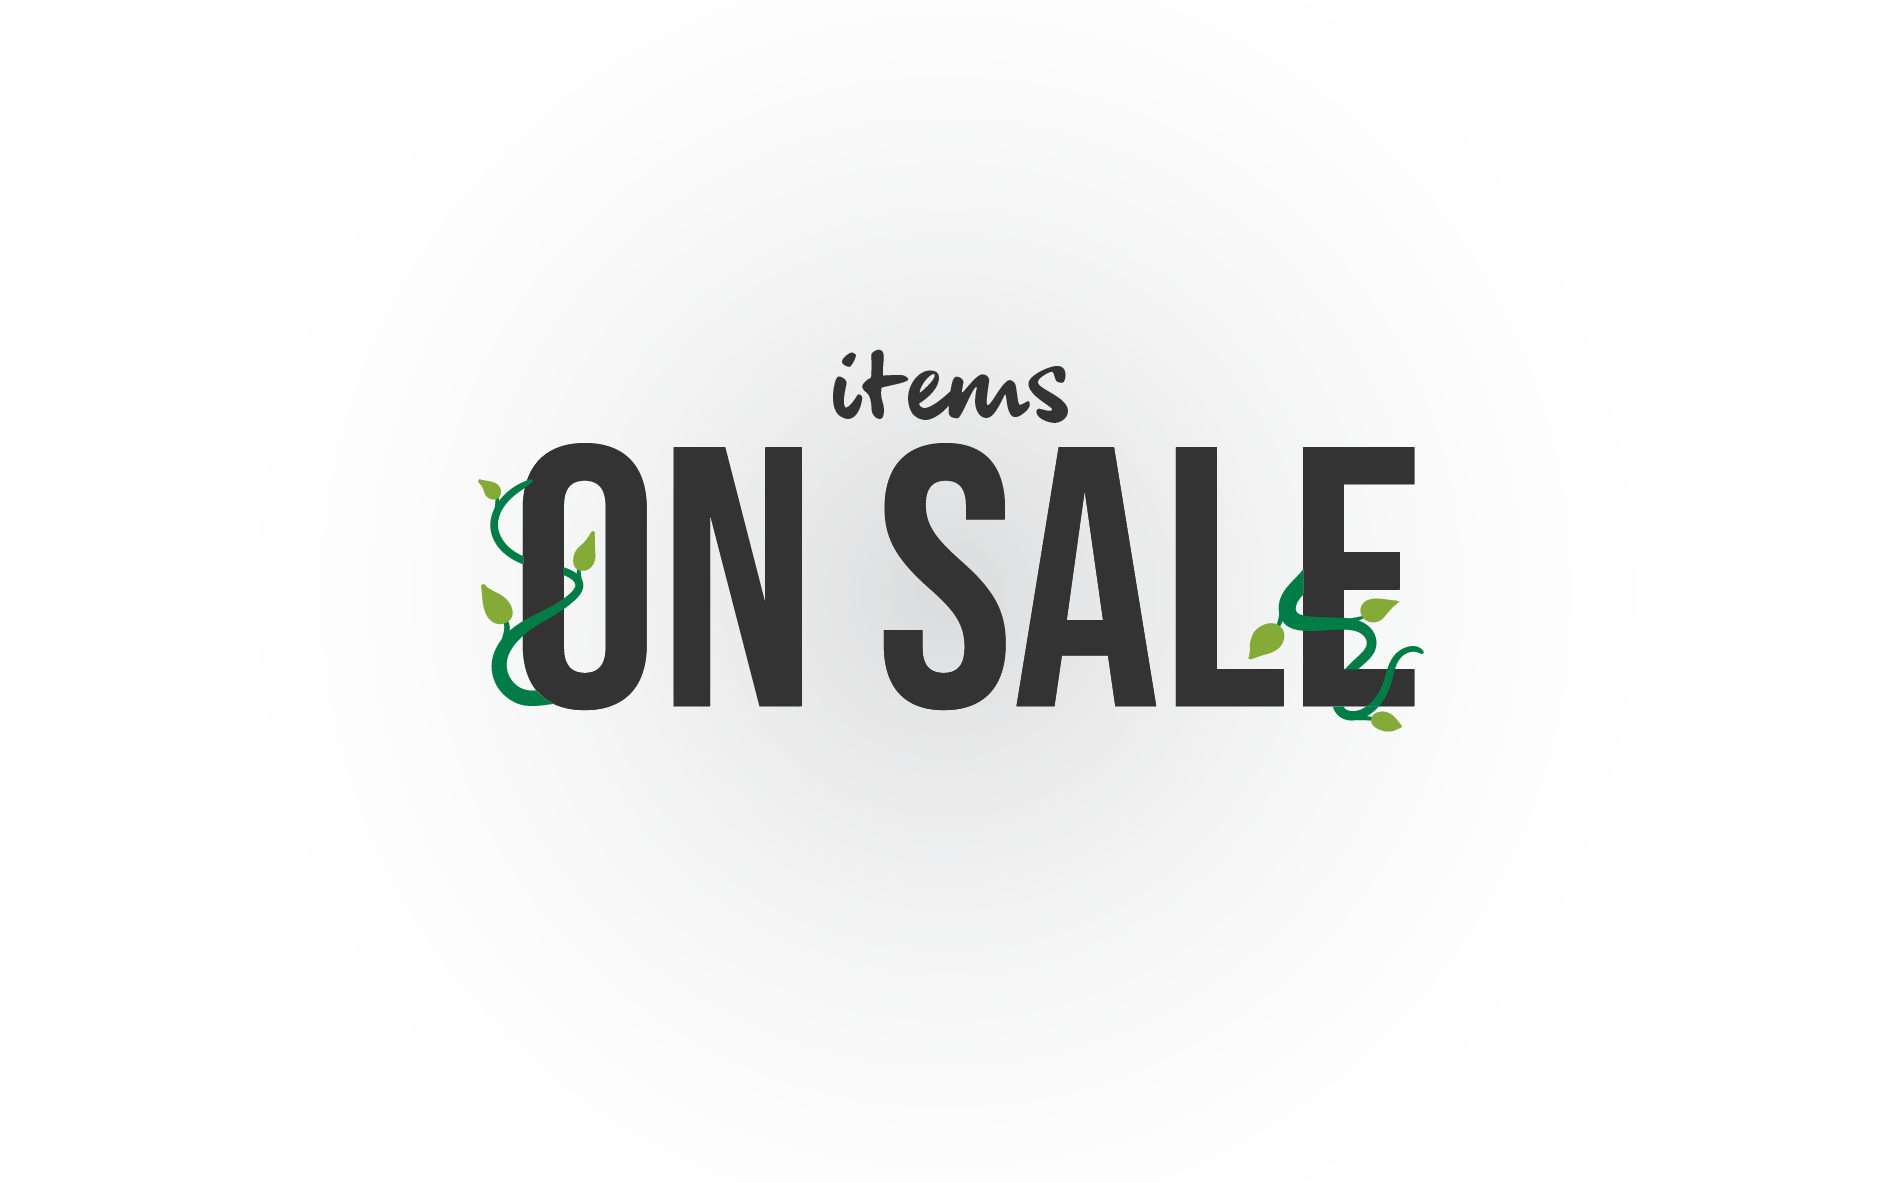 Items on sale!